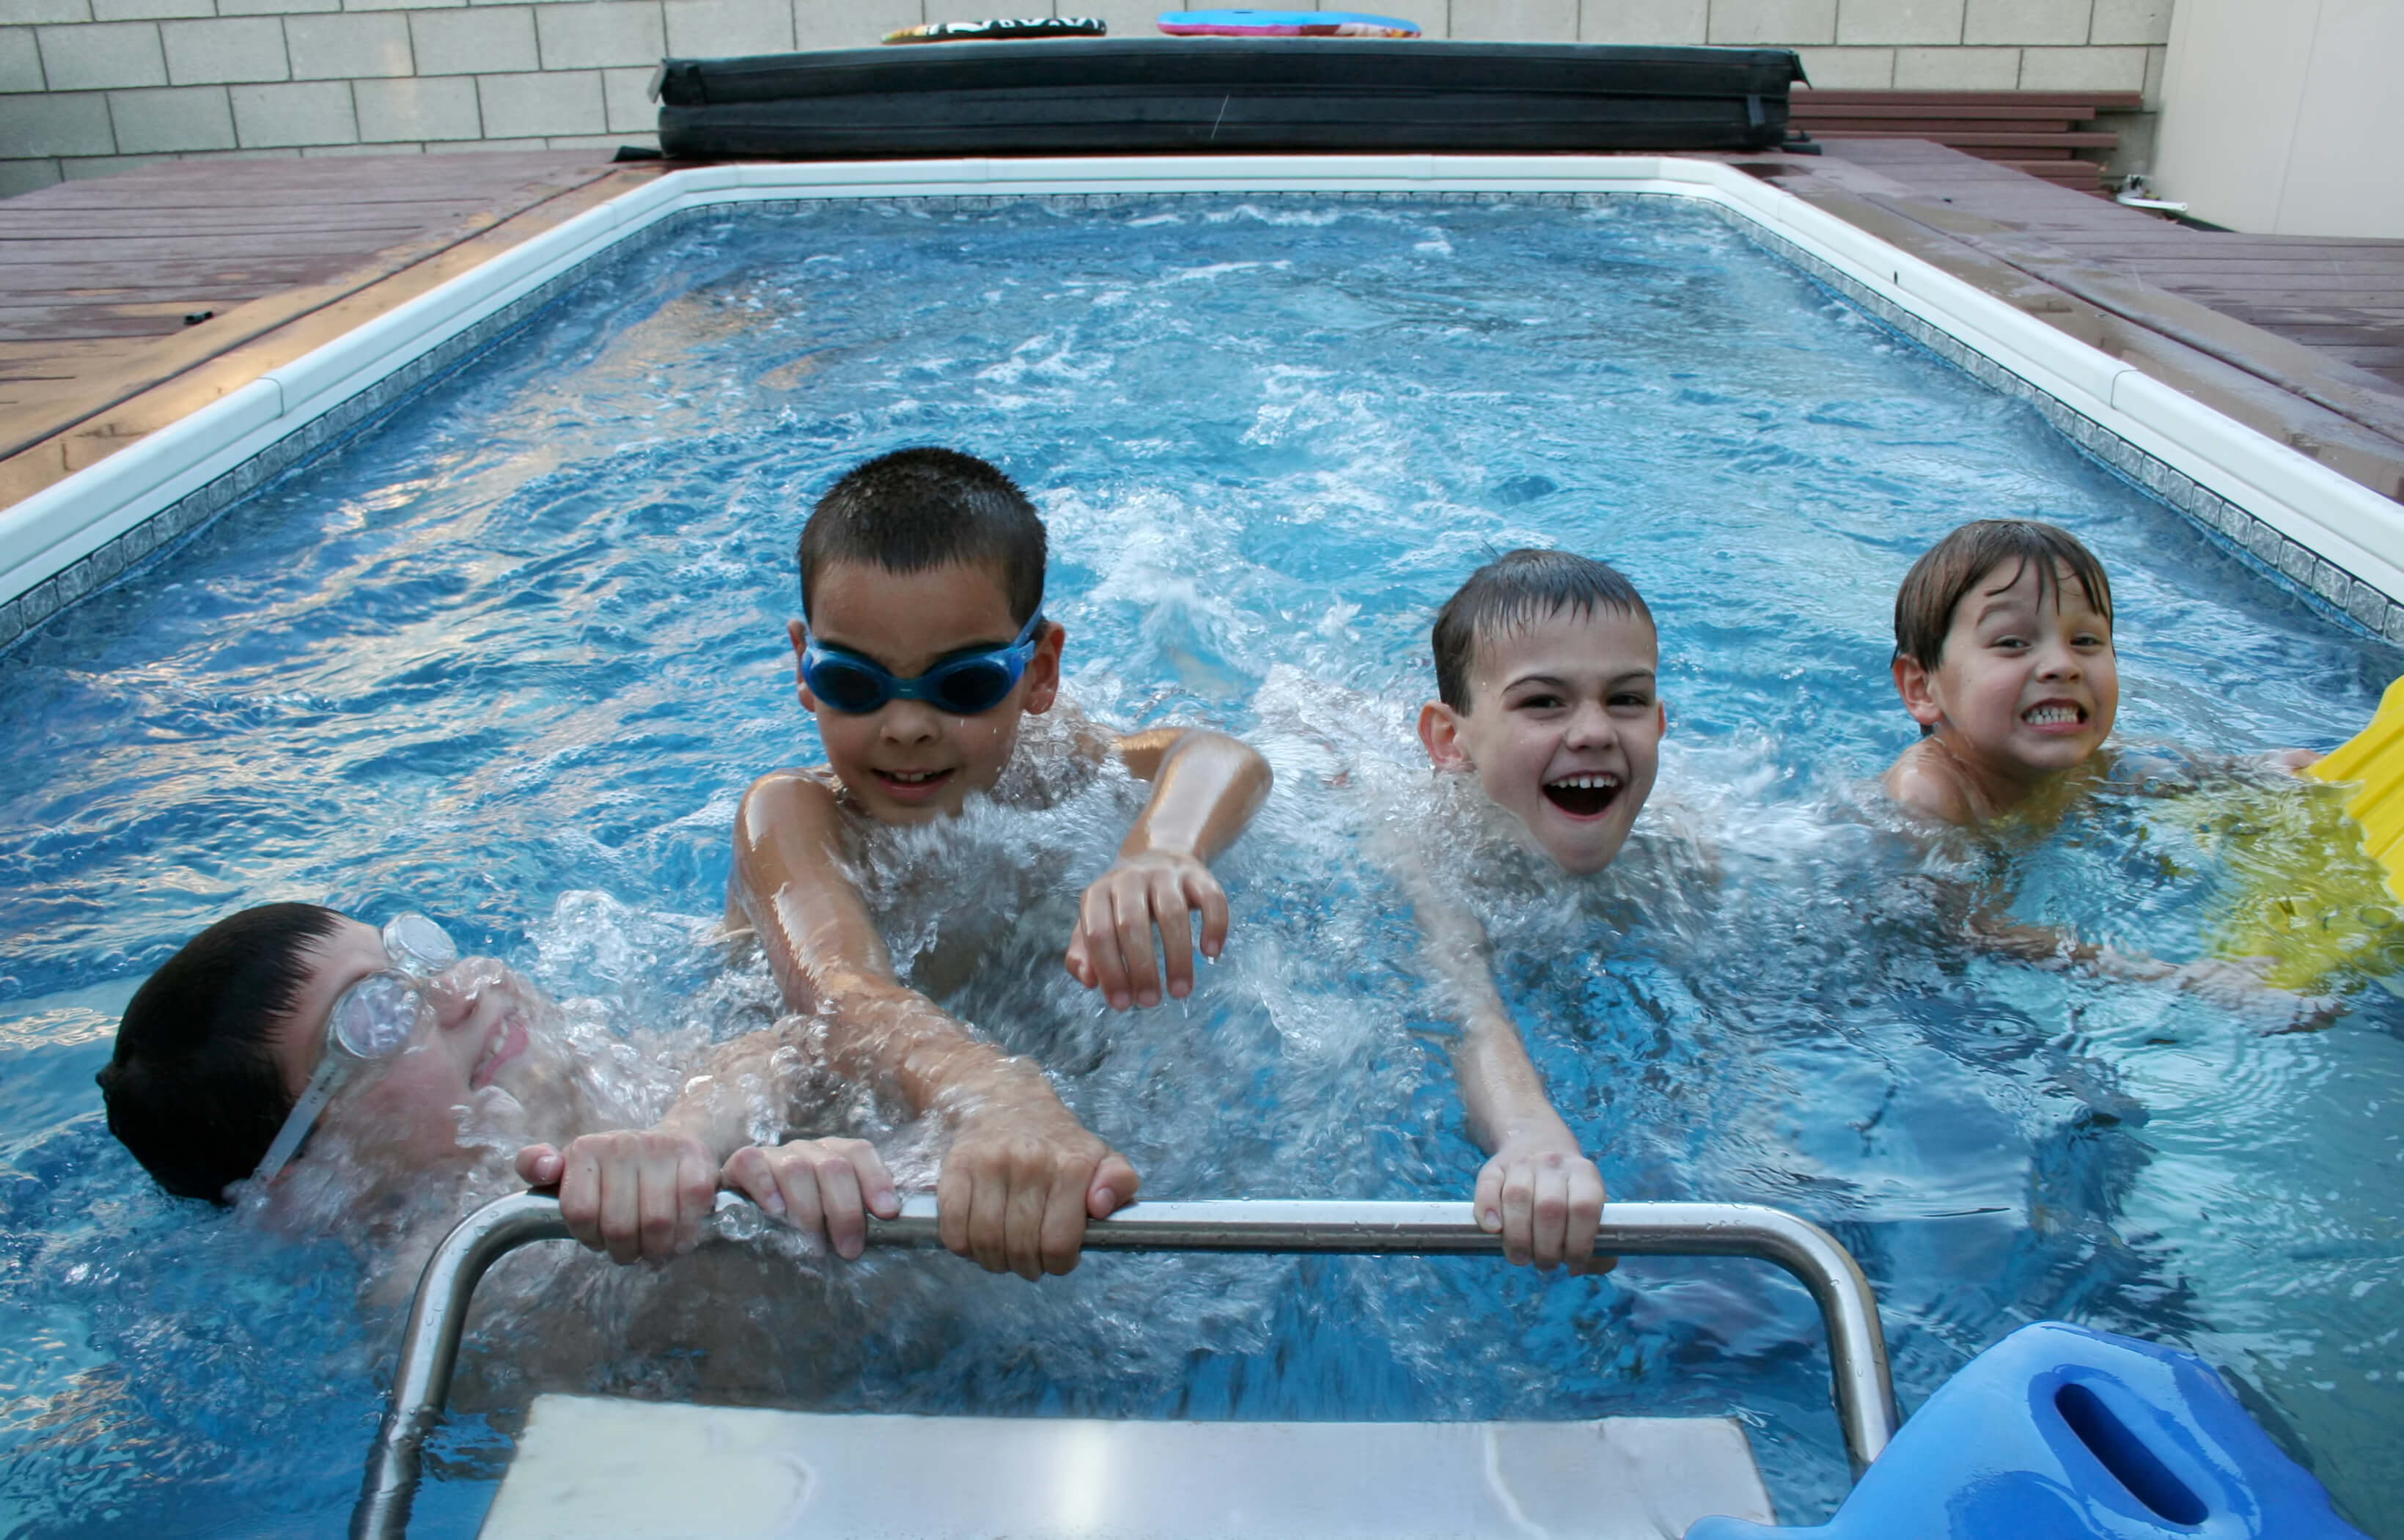 4 boys in an Original Endless Pools swimming machine